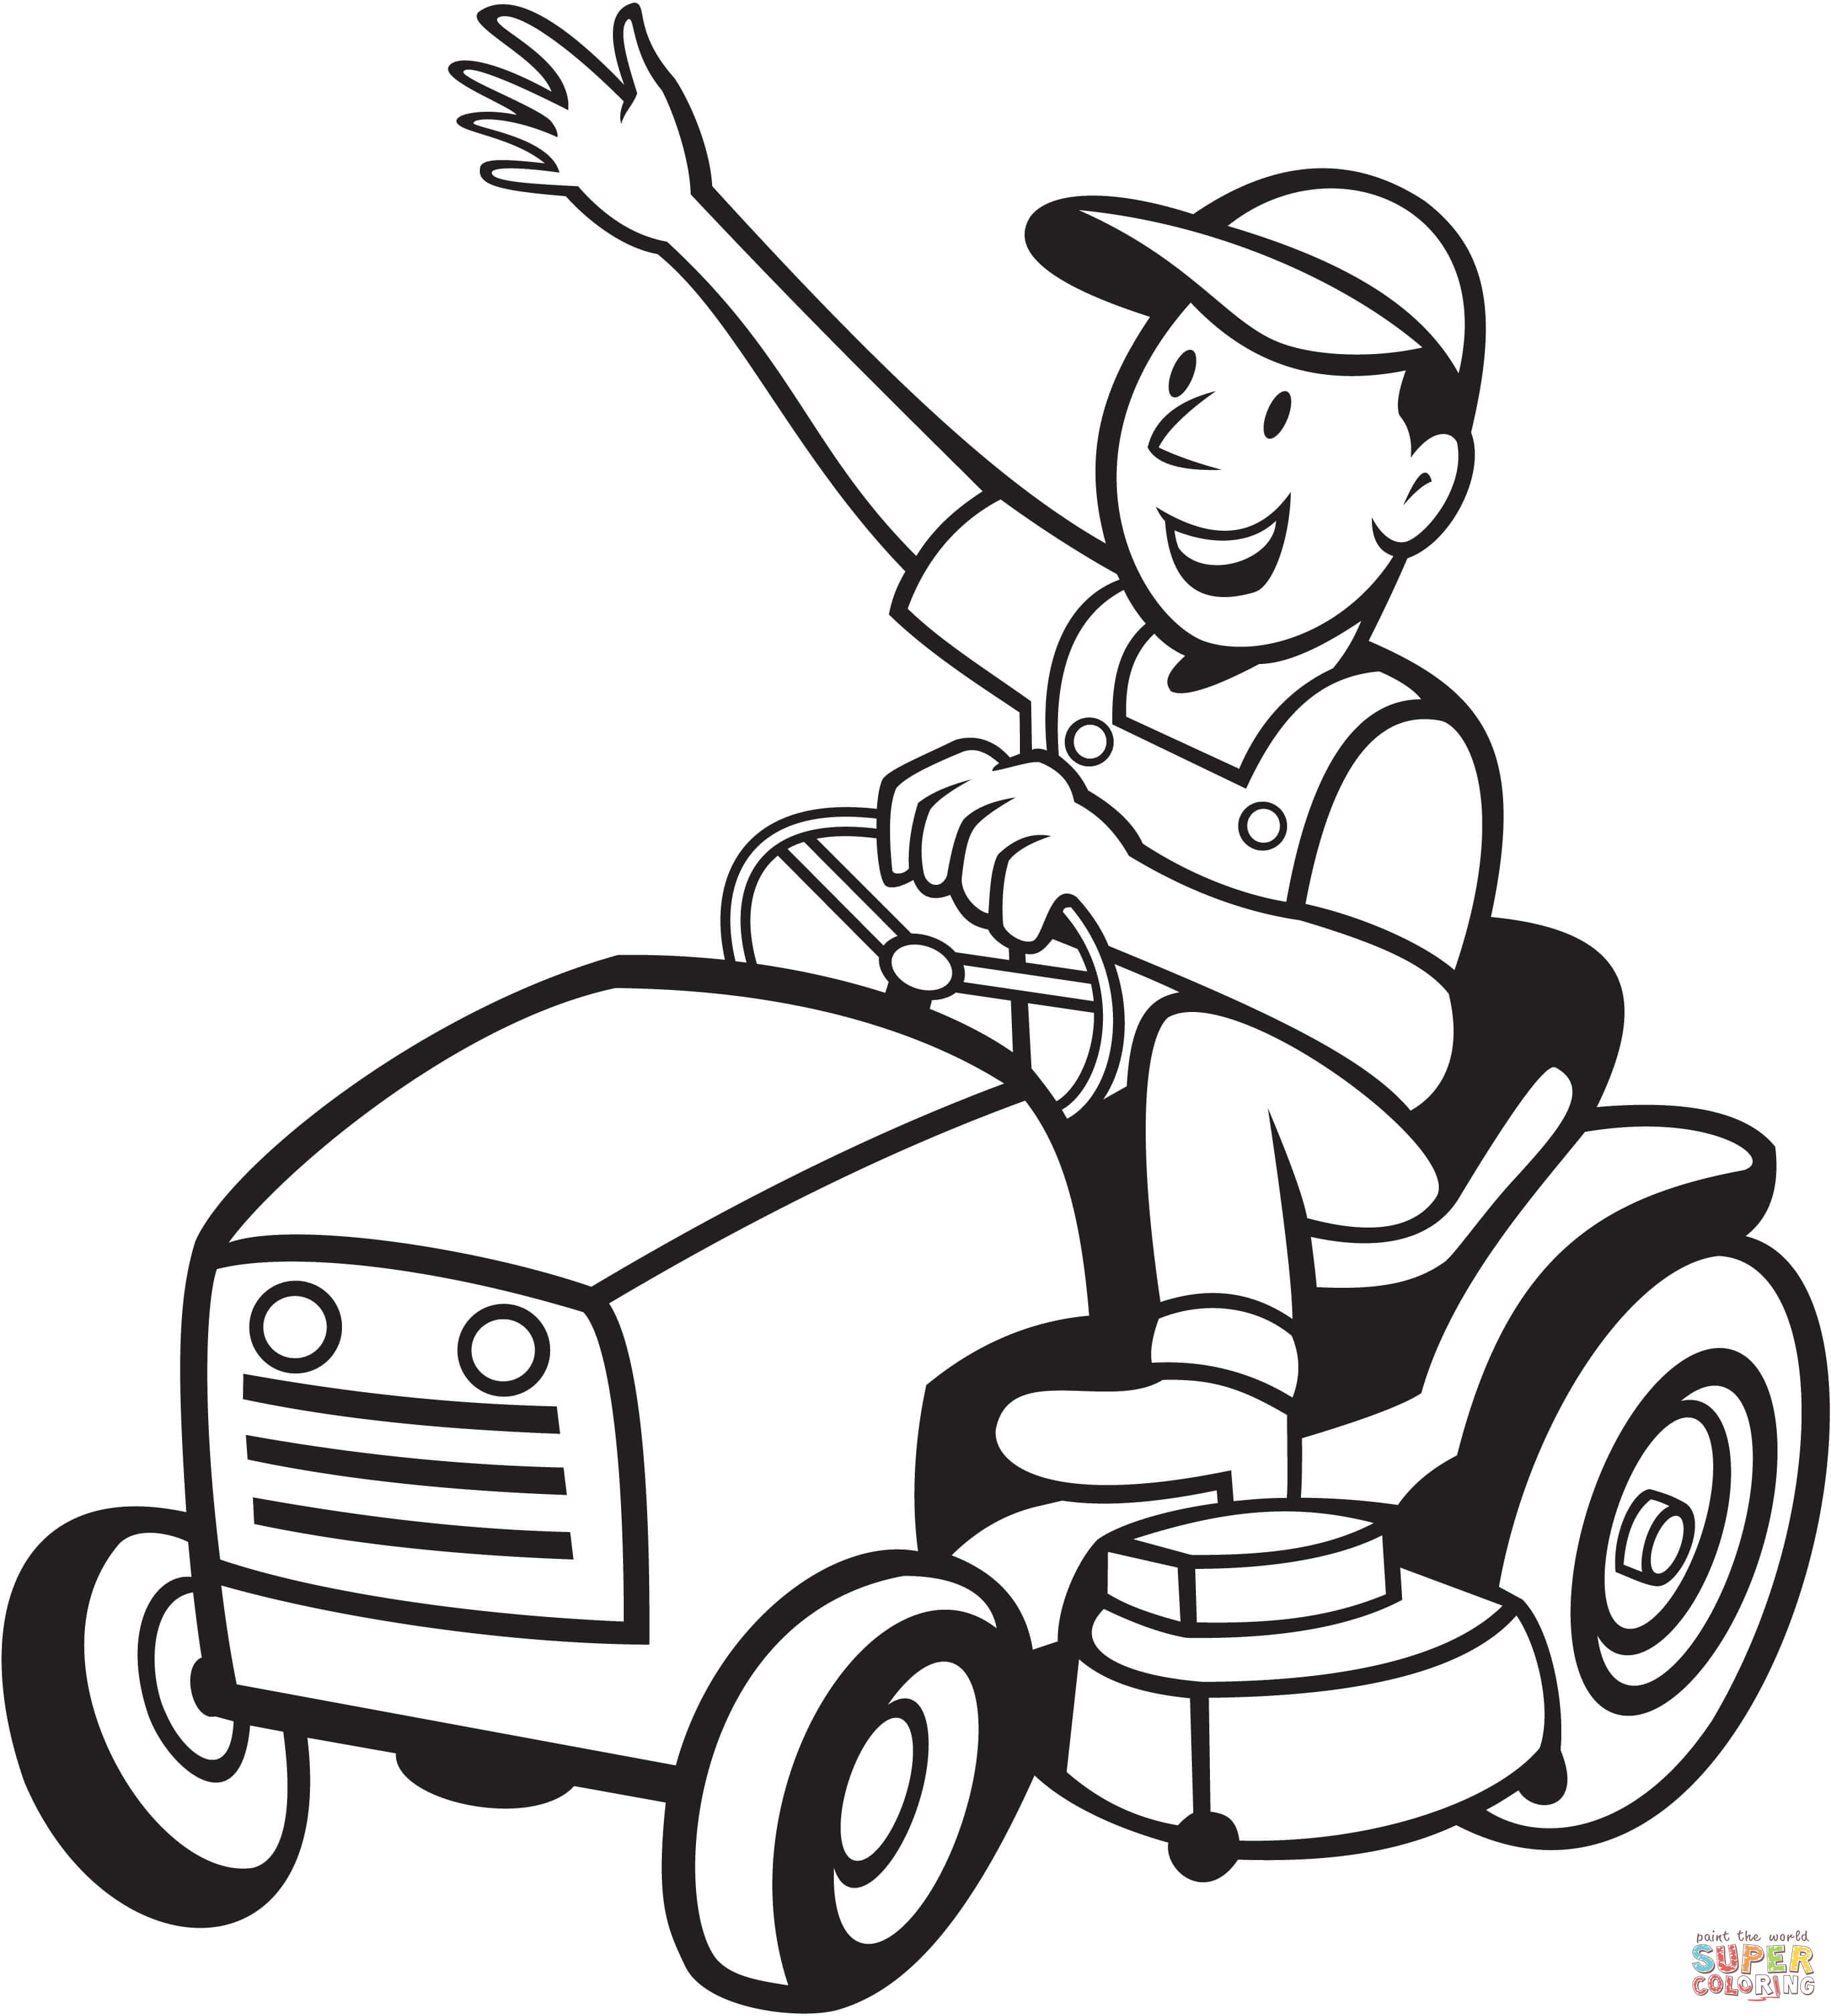 lawn mower silhouette at getdrawings com free for personal use rh getdrawings com